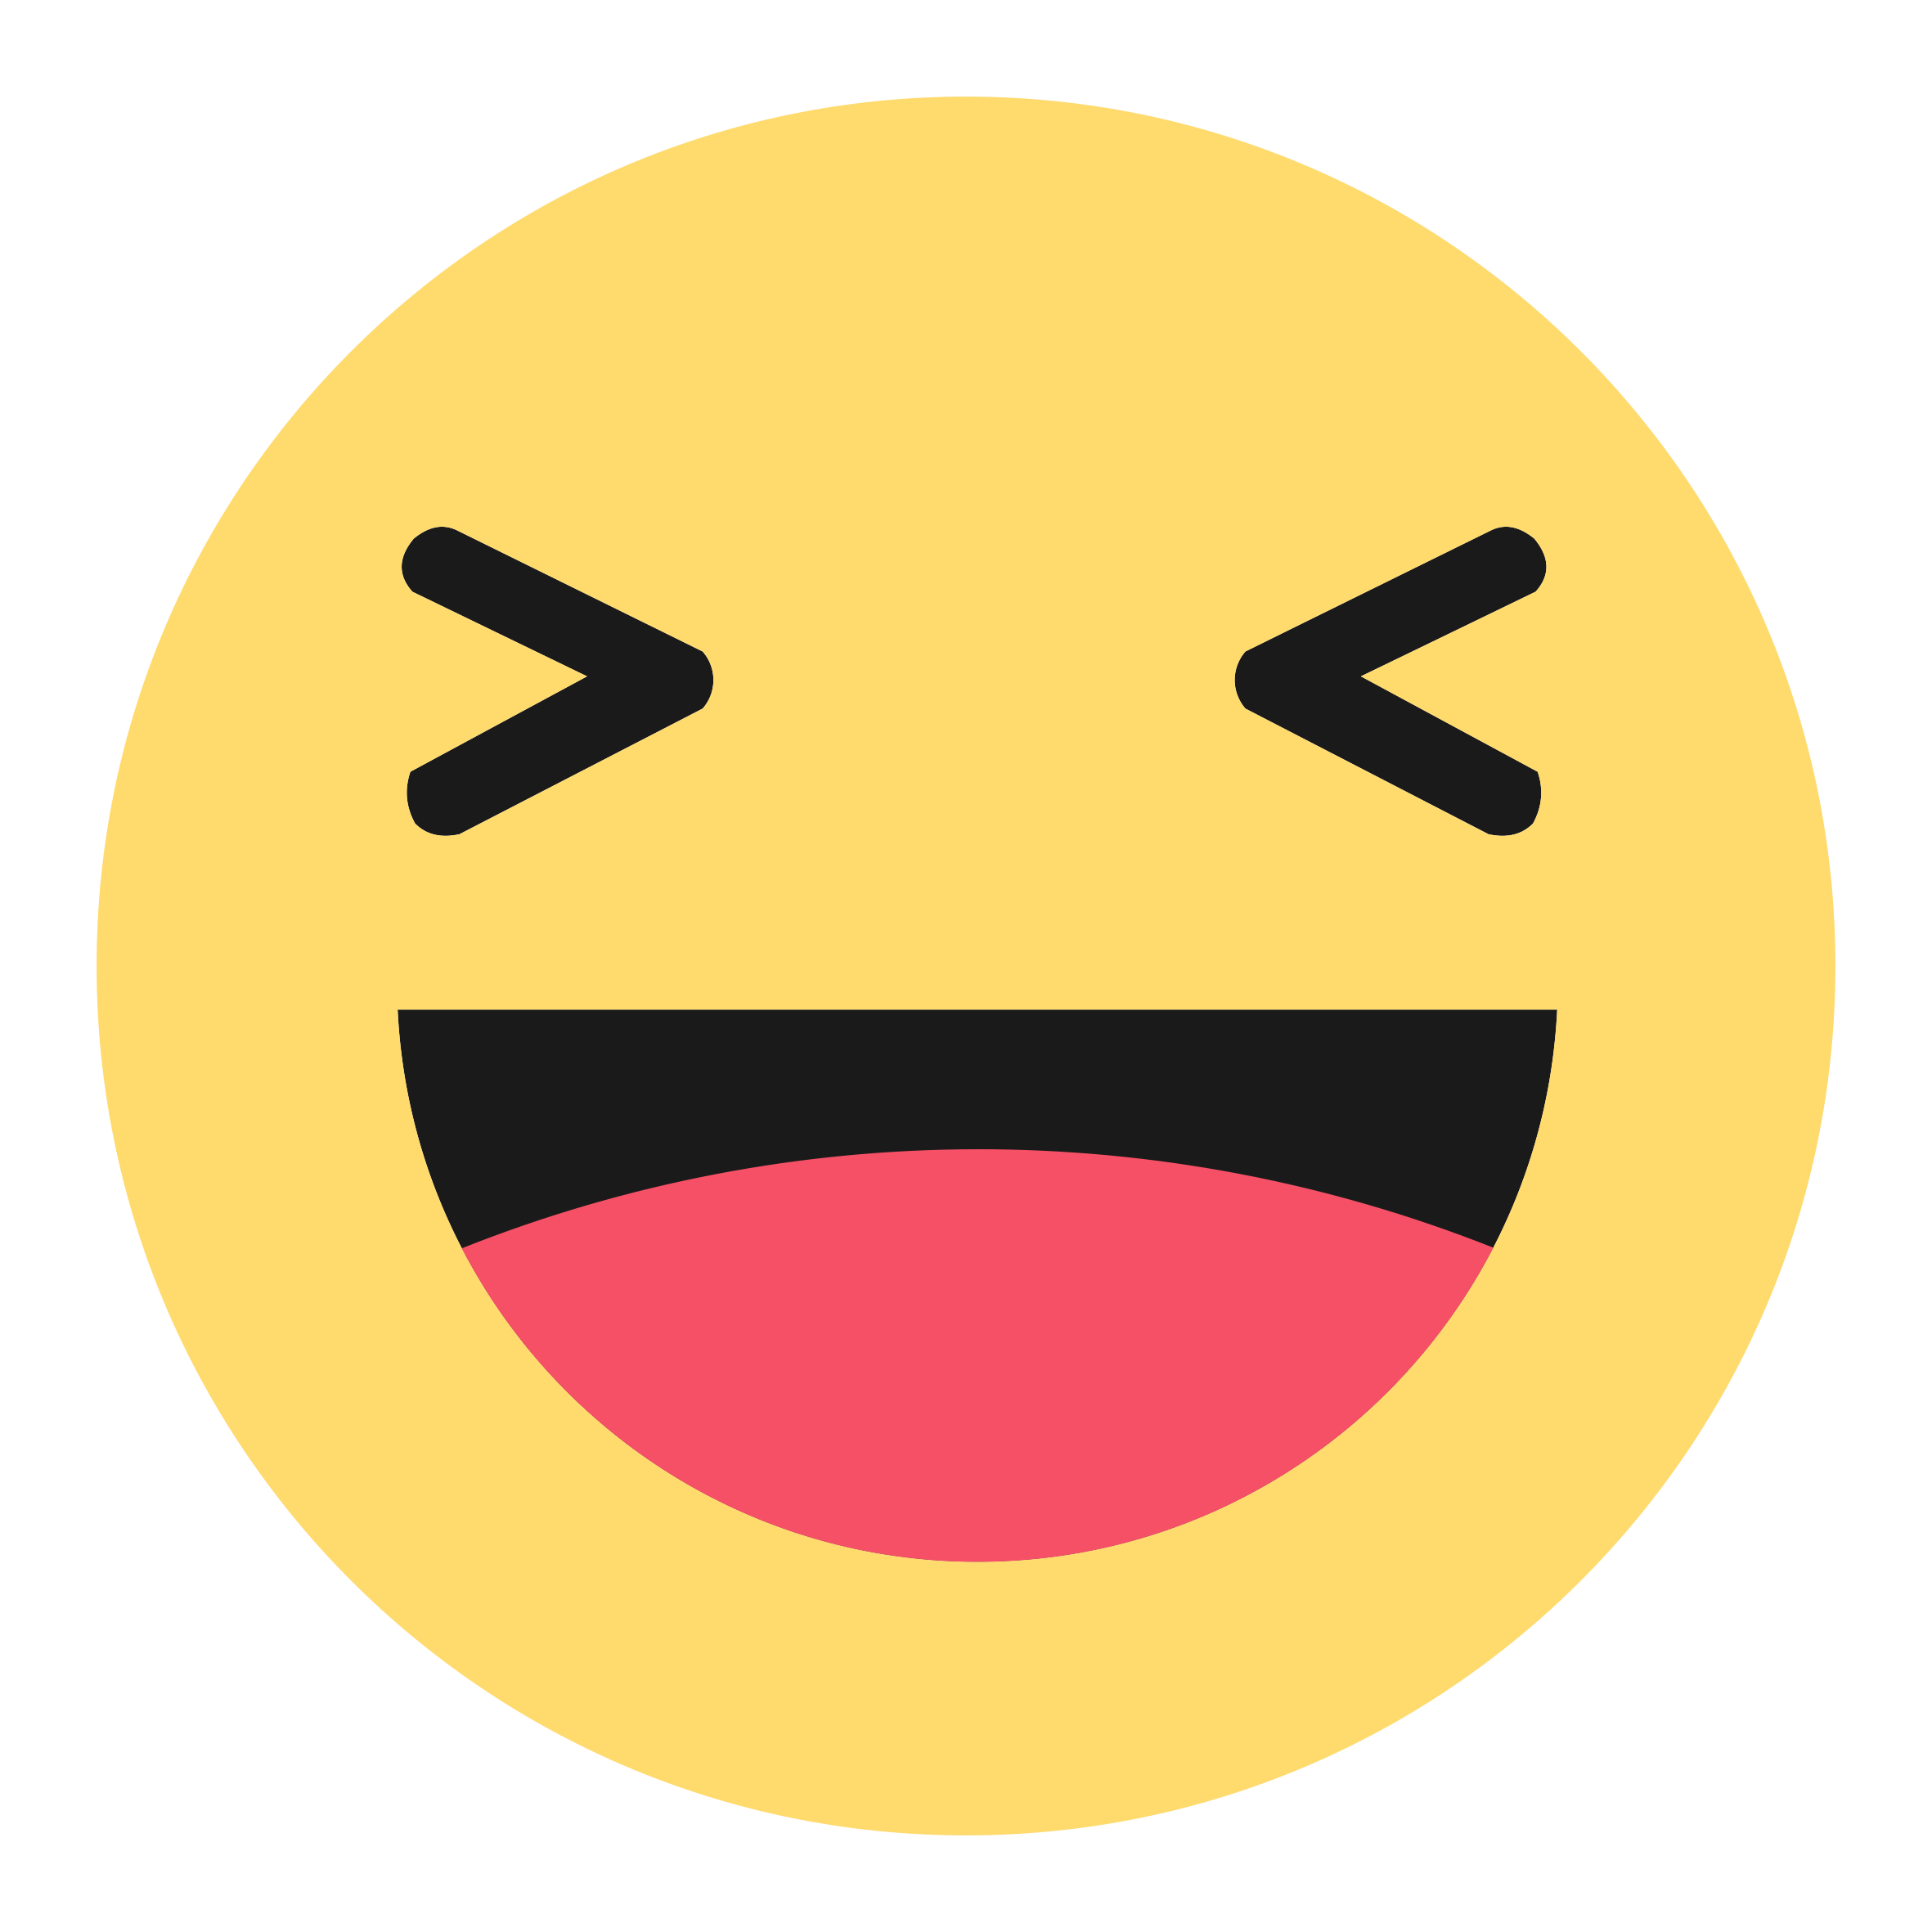 Smiley Like Button Random Buttons Facebook PNG Image